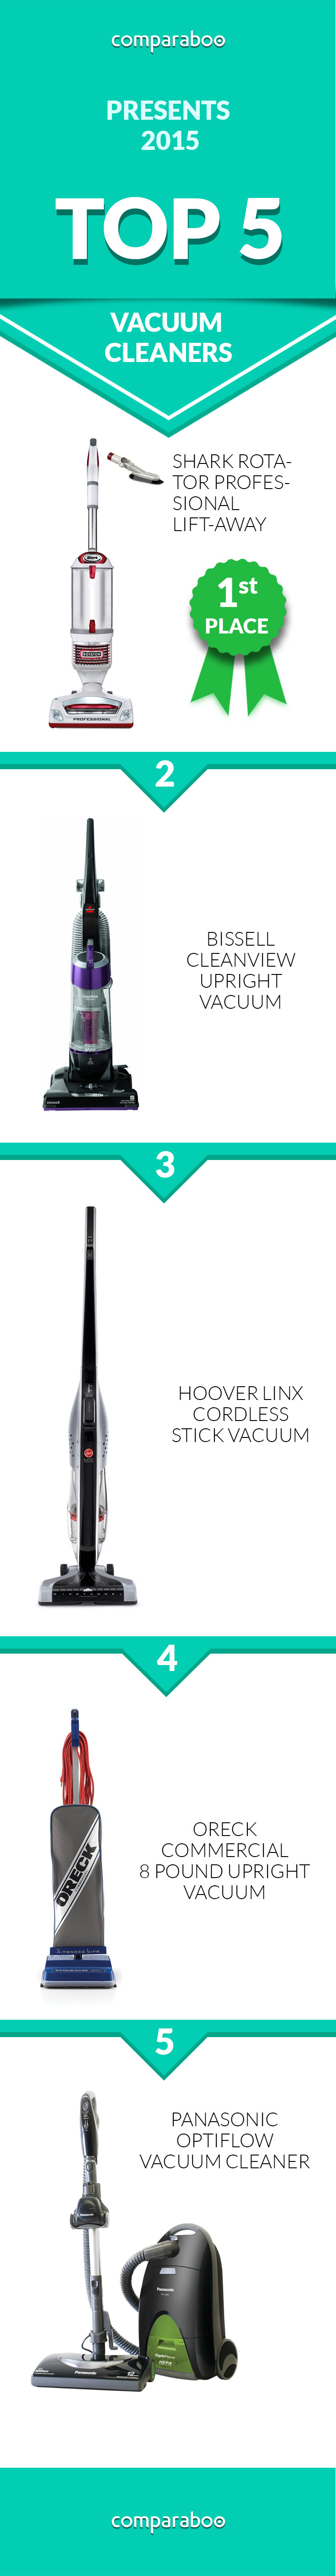 check out the top 5 vacuum cleaners on comparaboo you deserve a vacuum that really - Top 5 Vacuum Cleaners